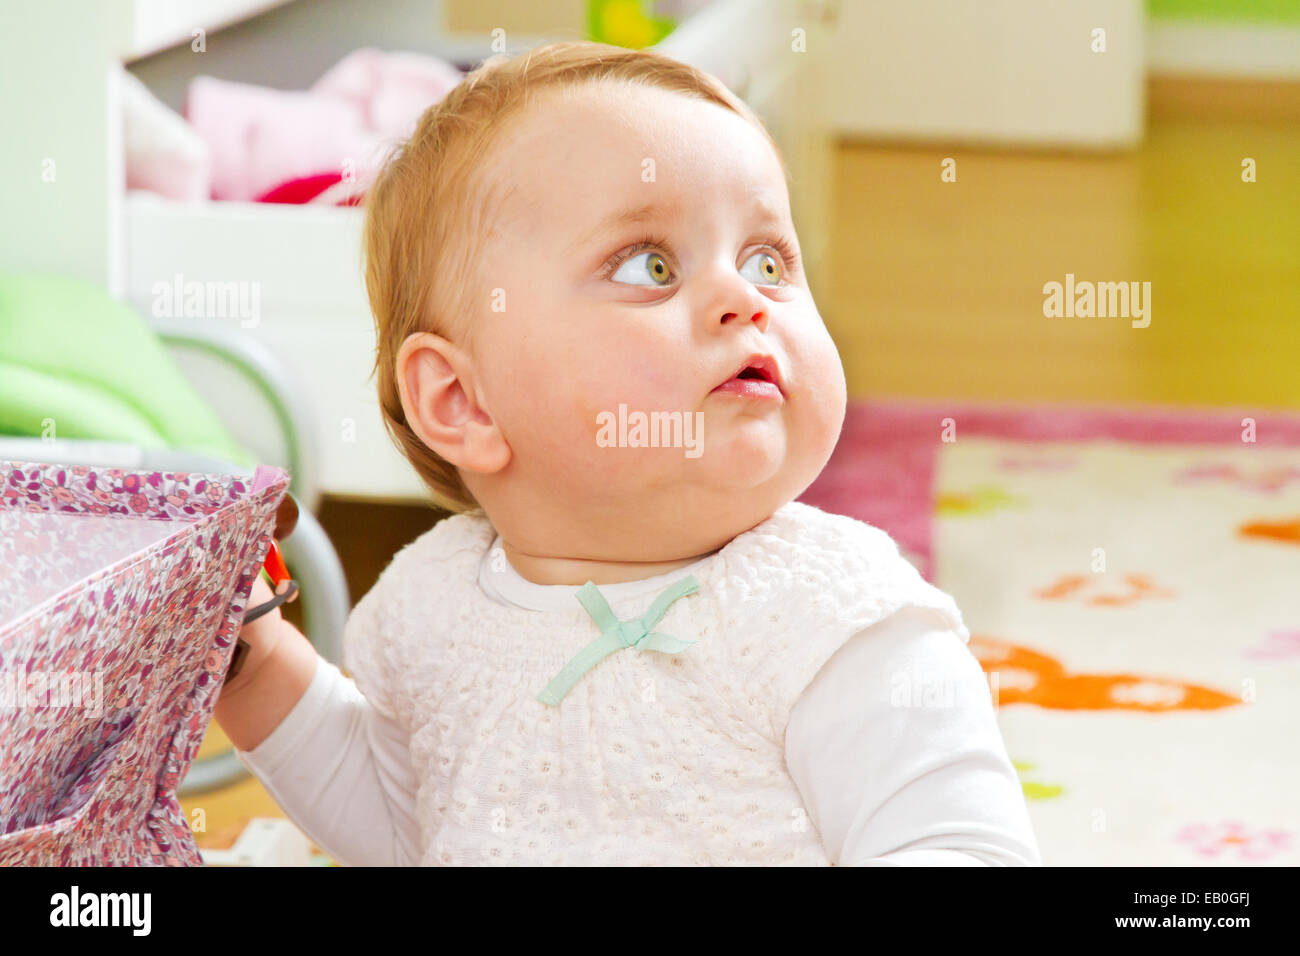 Portrait of a happy baby girl - Stock Image